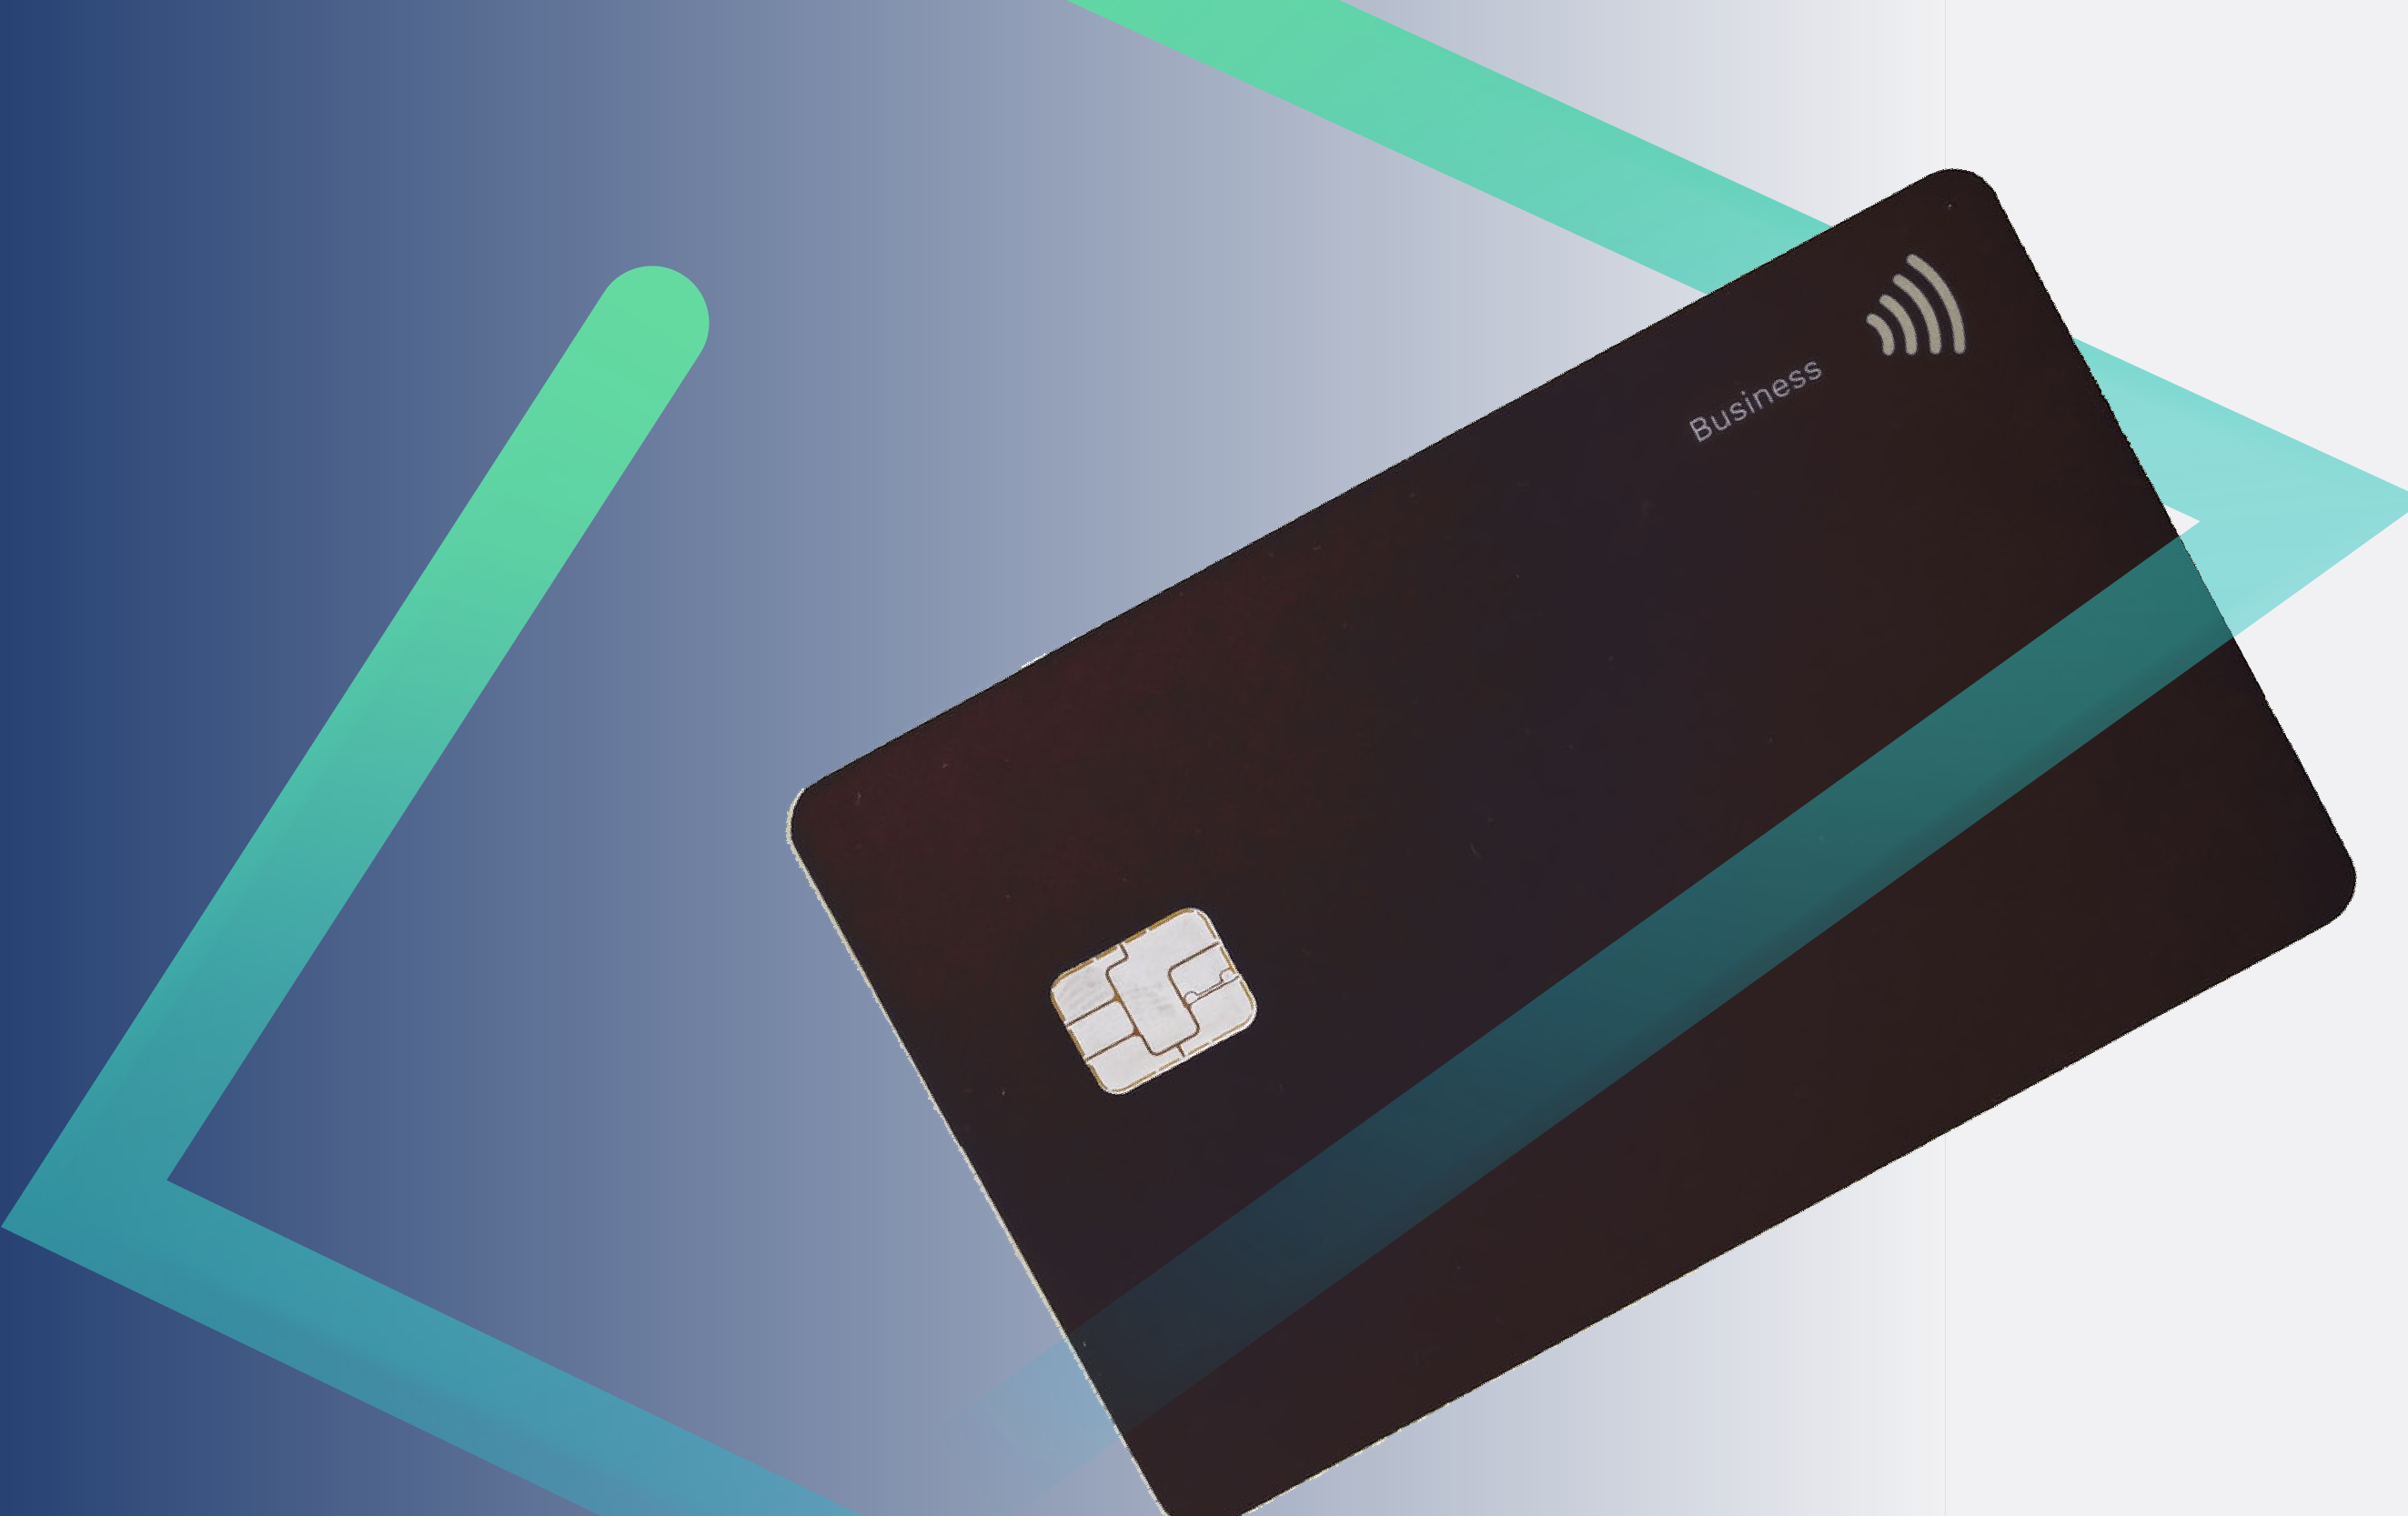 Emotion AI Consumer Research Helps Credit Card Design Decisions